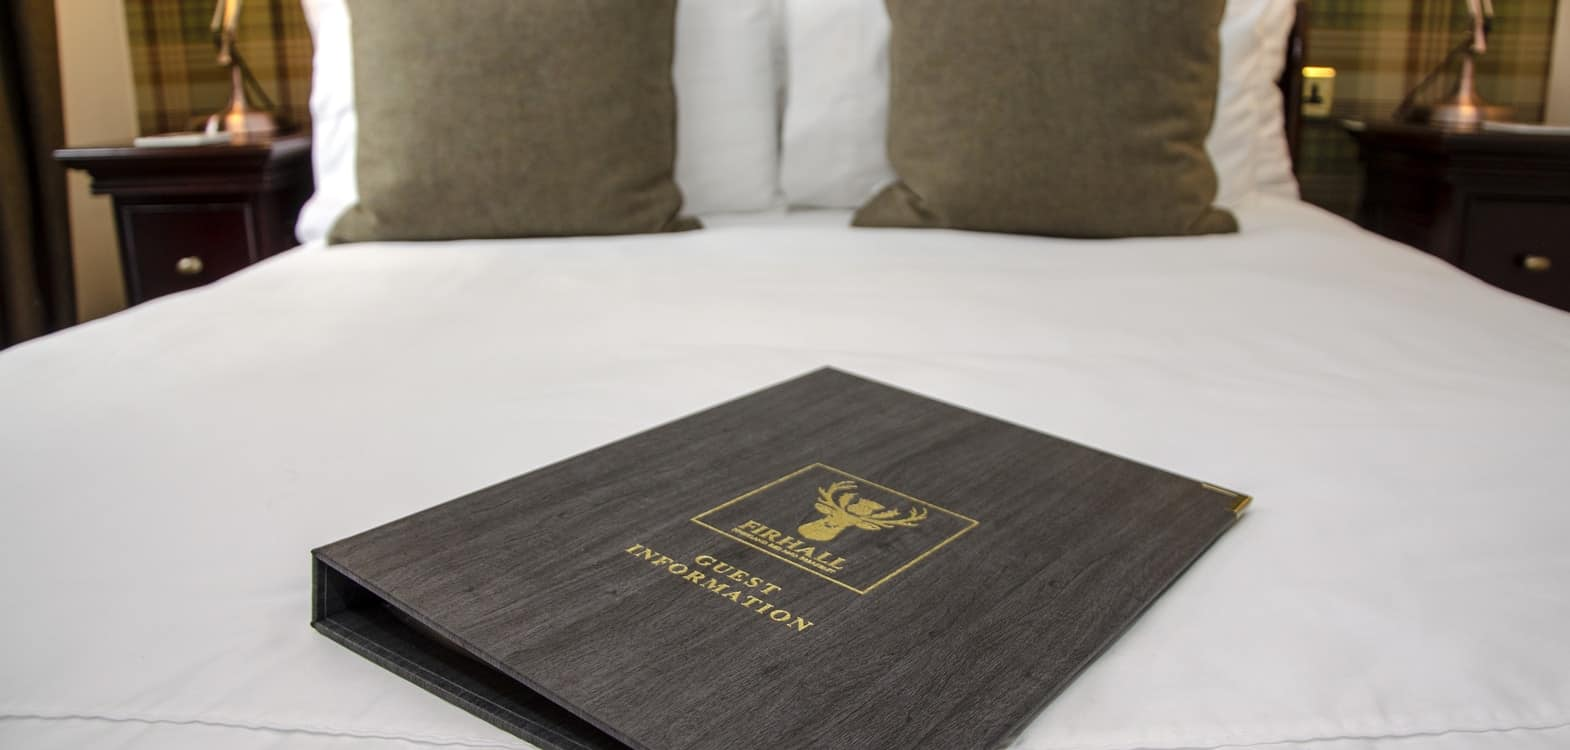 Firhall guest information folder laid out on a made up bed in the Skye bedroom